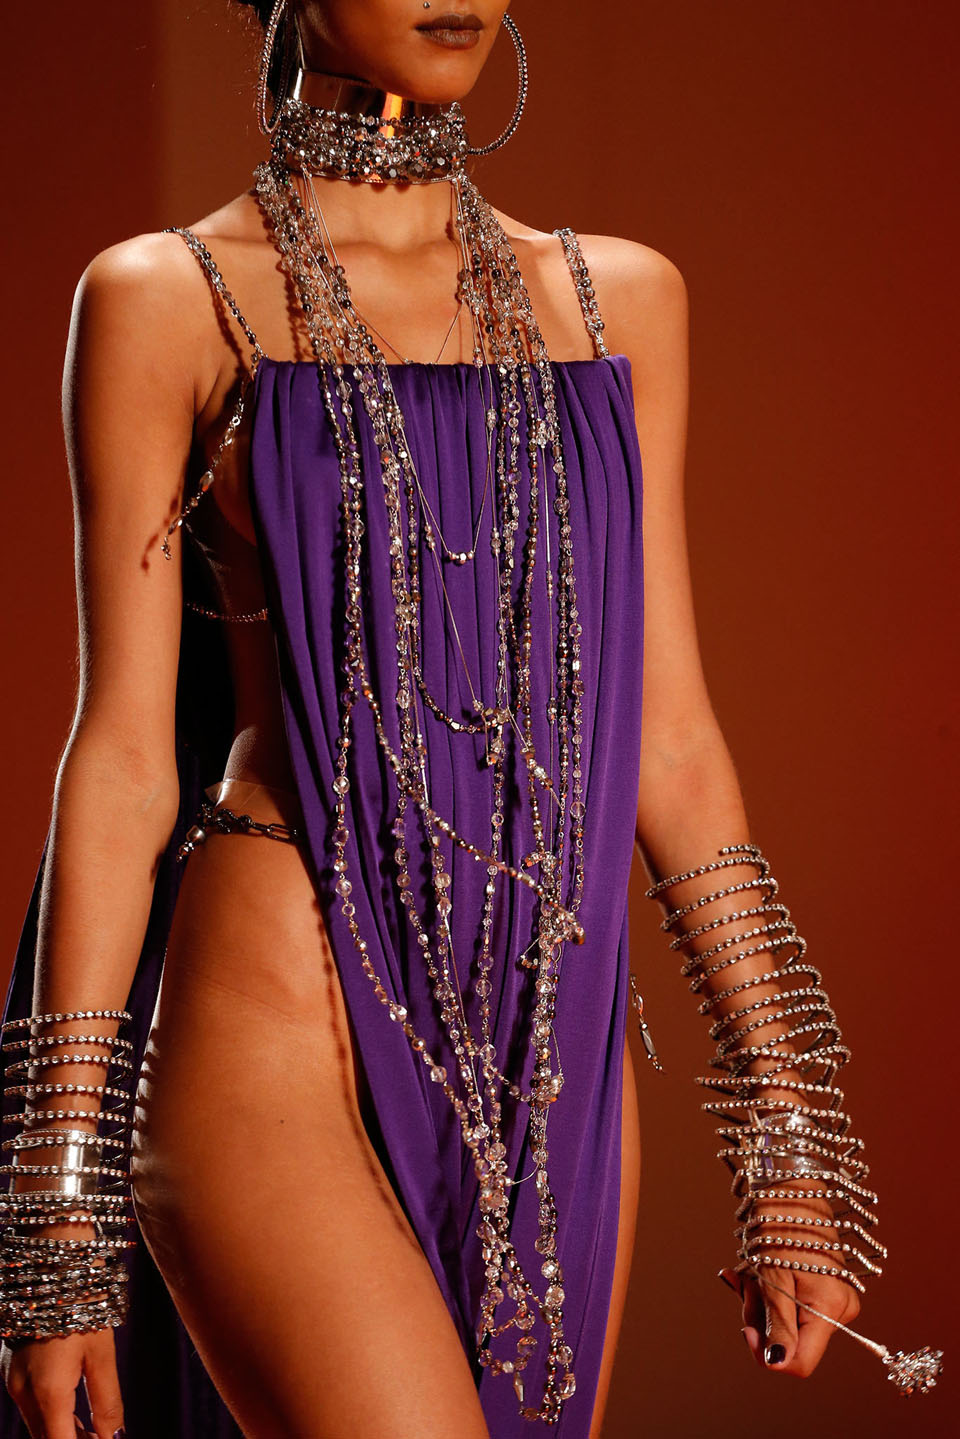 Jean Paul Gaultier Spring - Summer 2013, Haute Couture collection.28